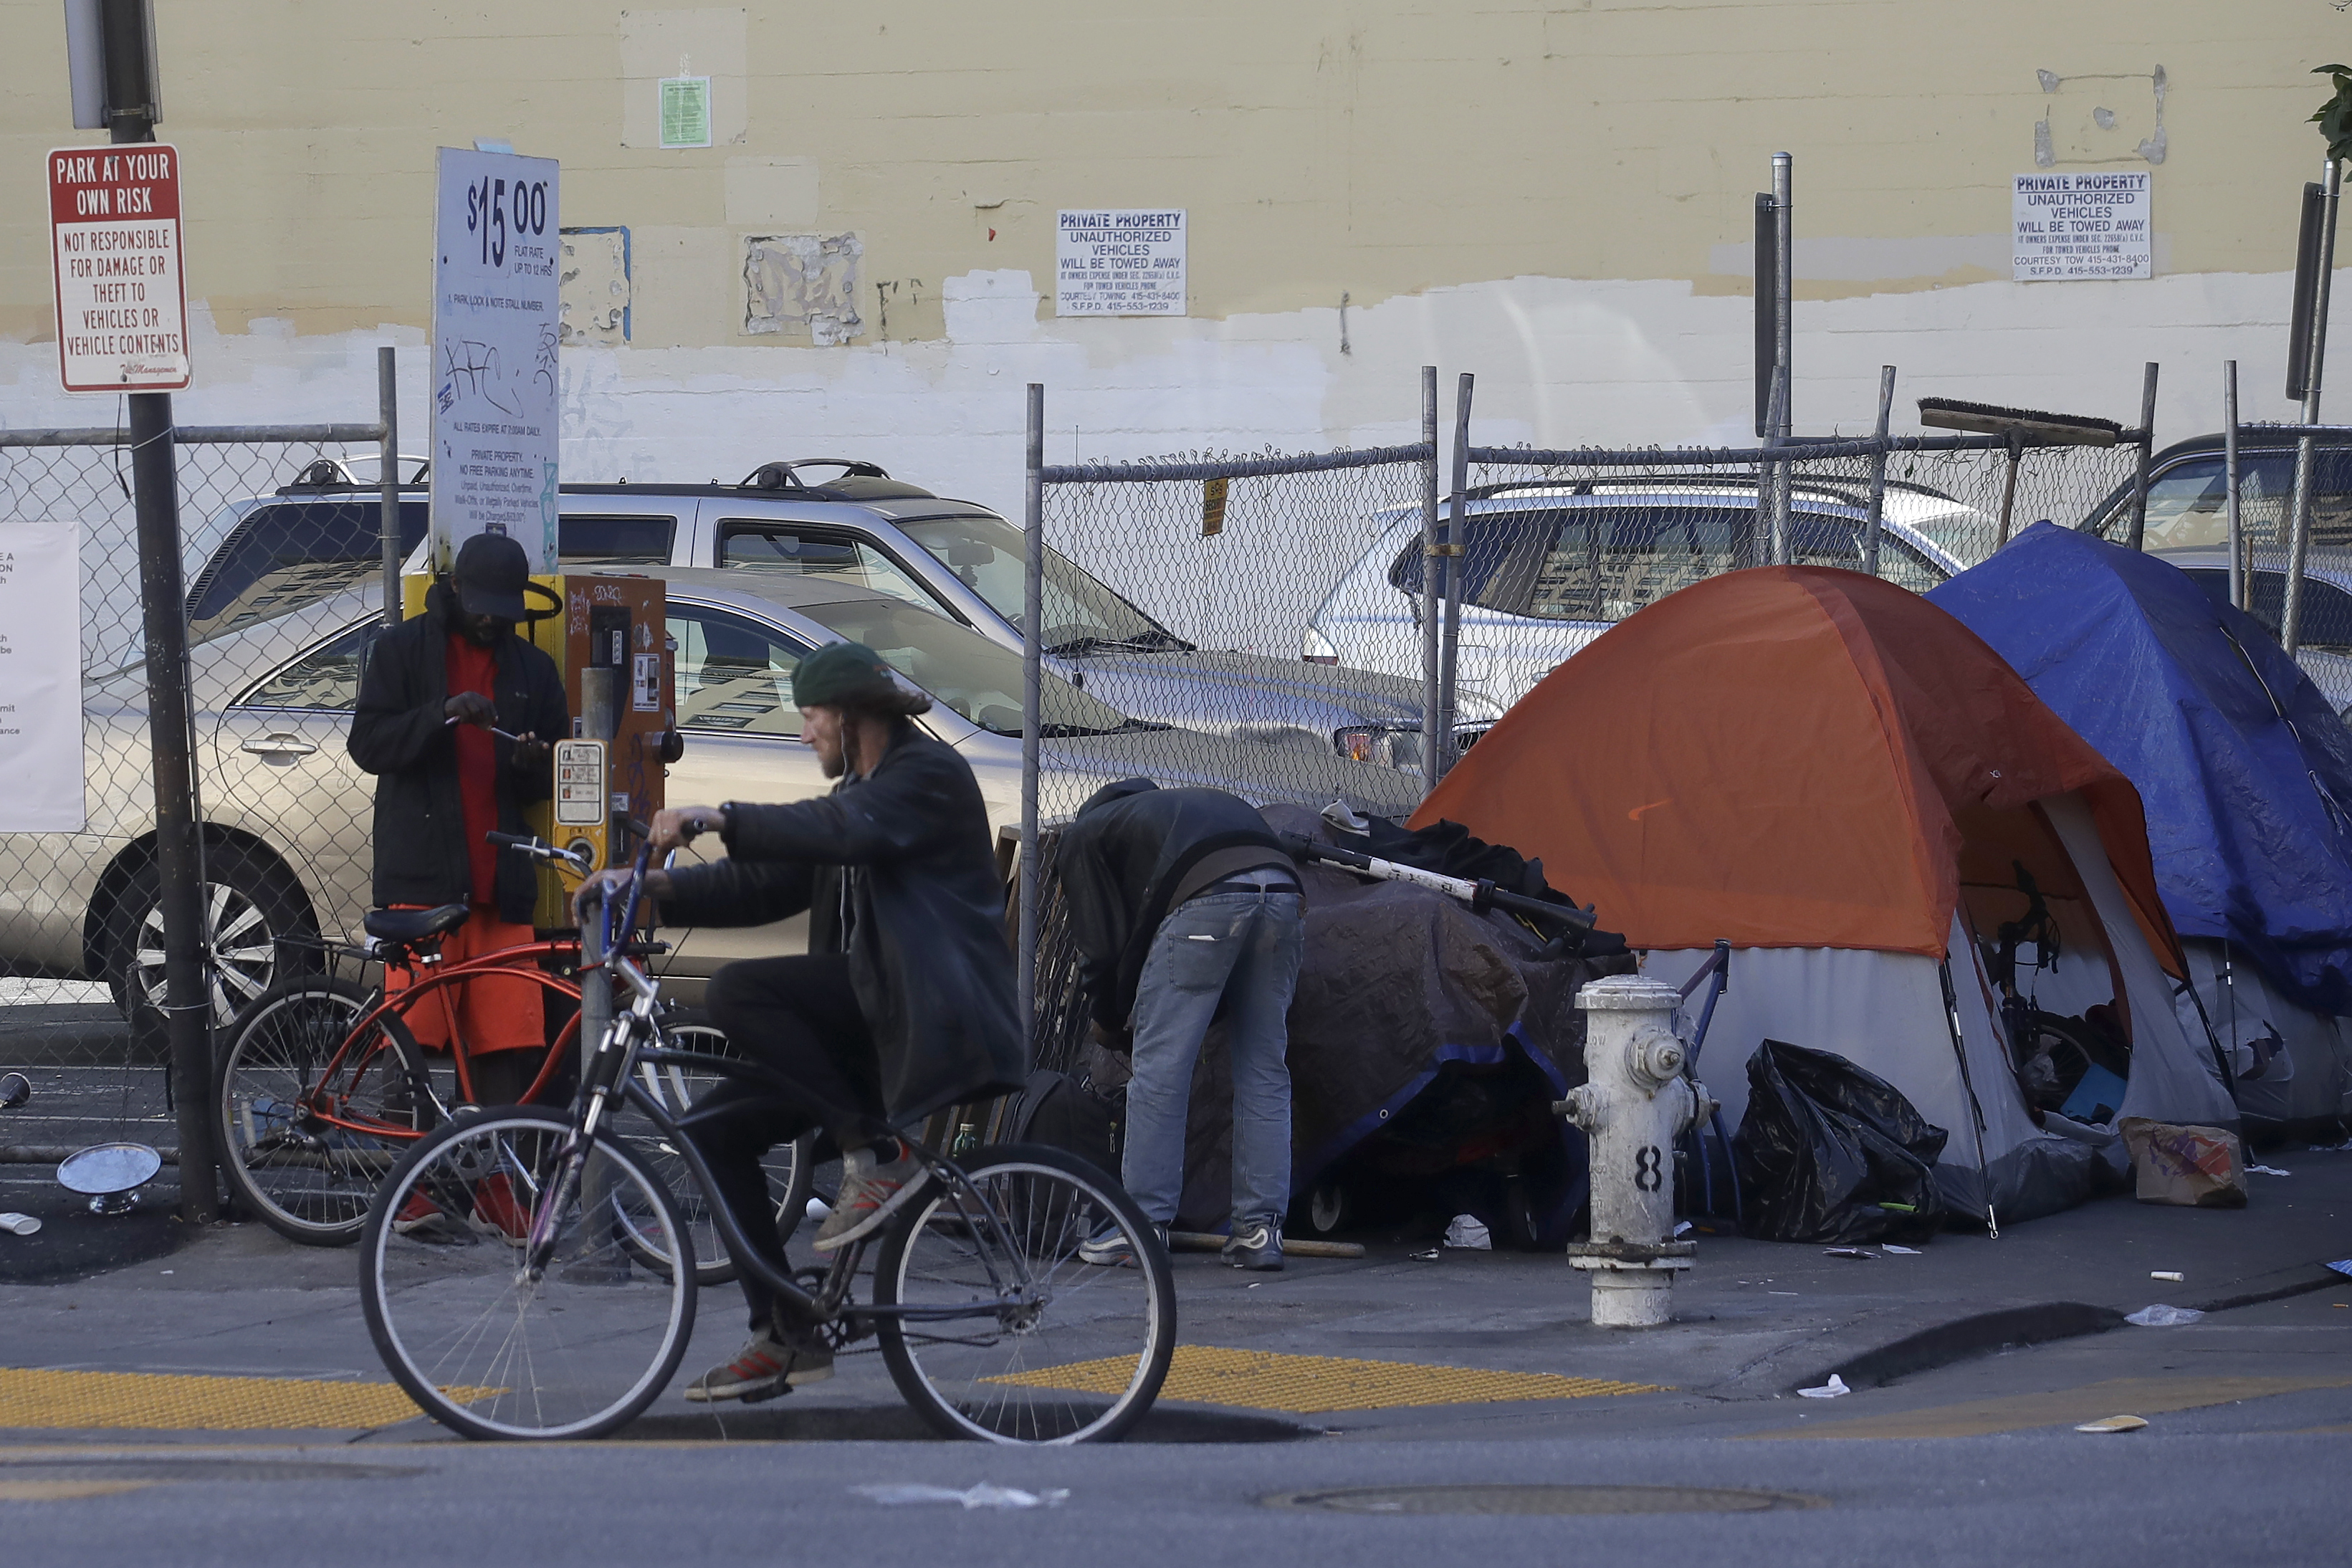 A man rides a bicycle in front of tents on a sidewalk in San Francisco.